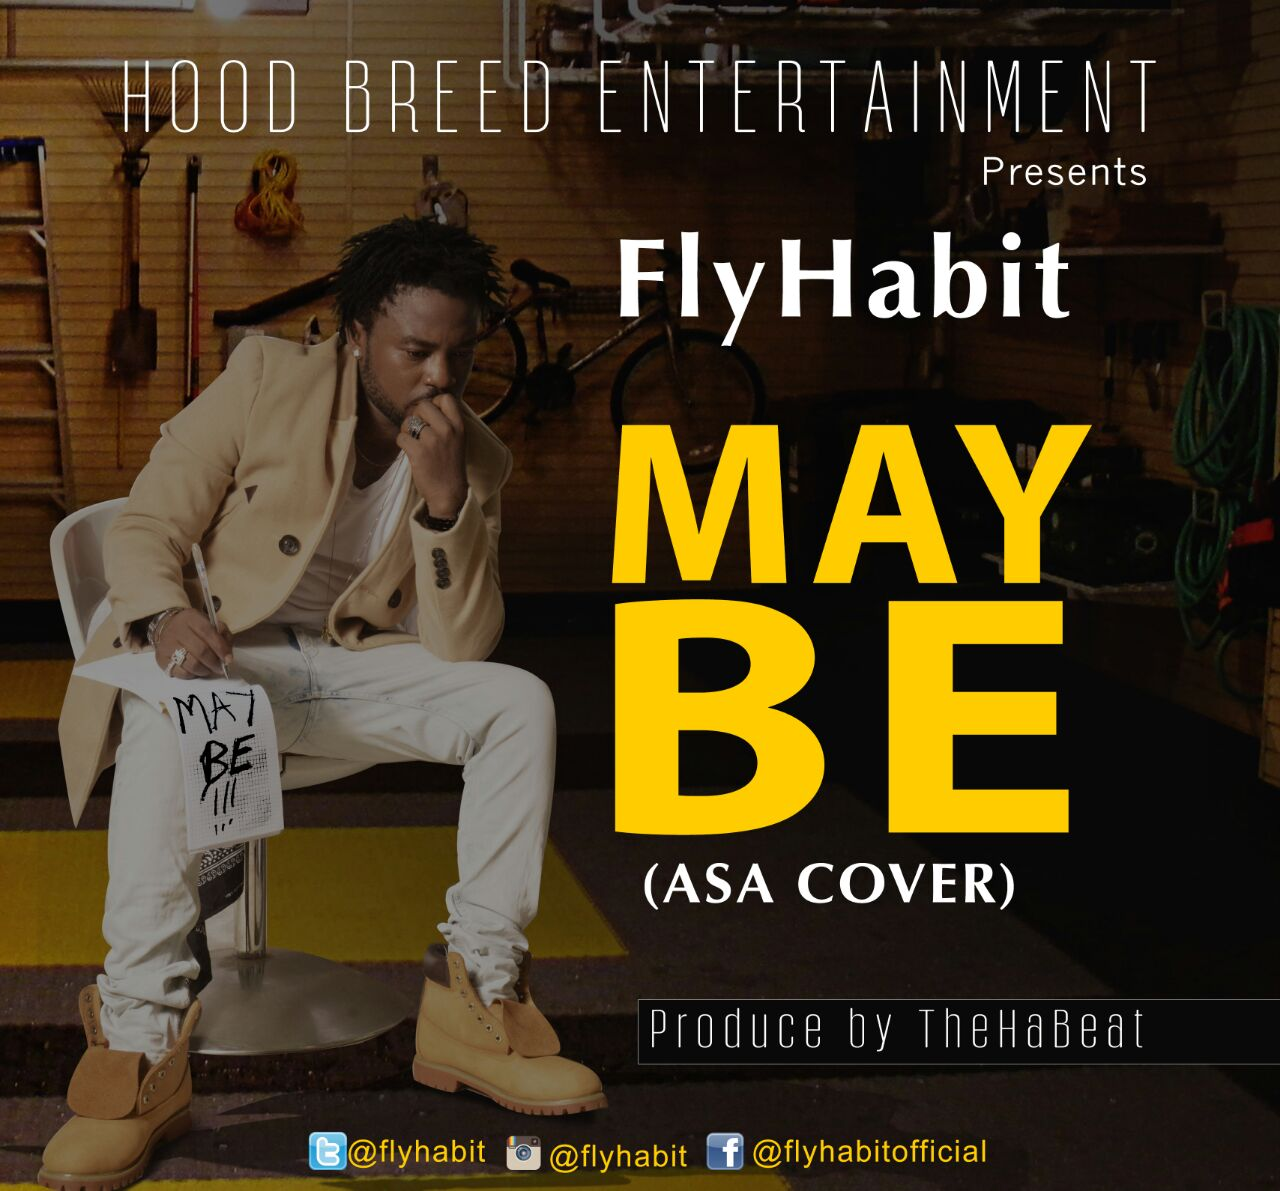 Flyhabit Maybe (Asa Cover)